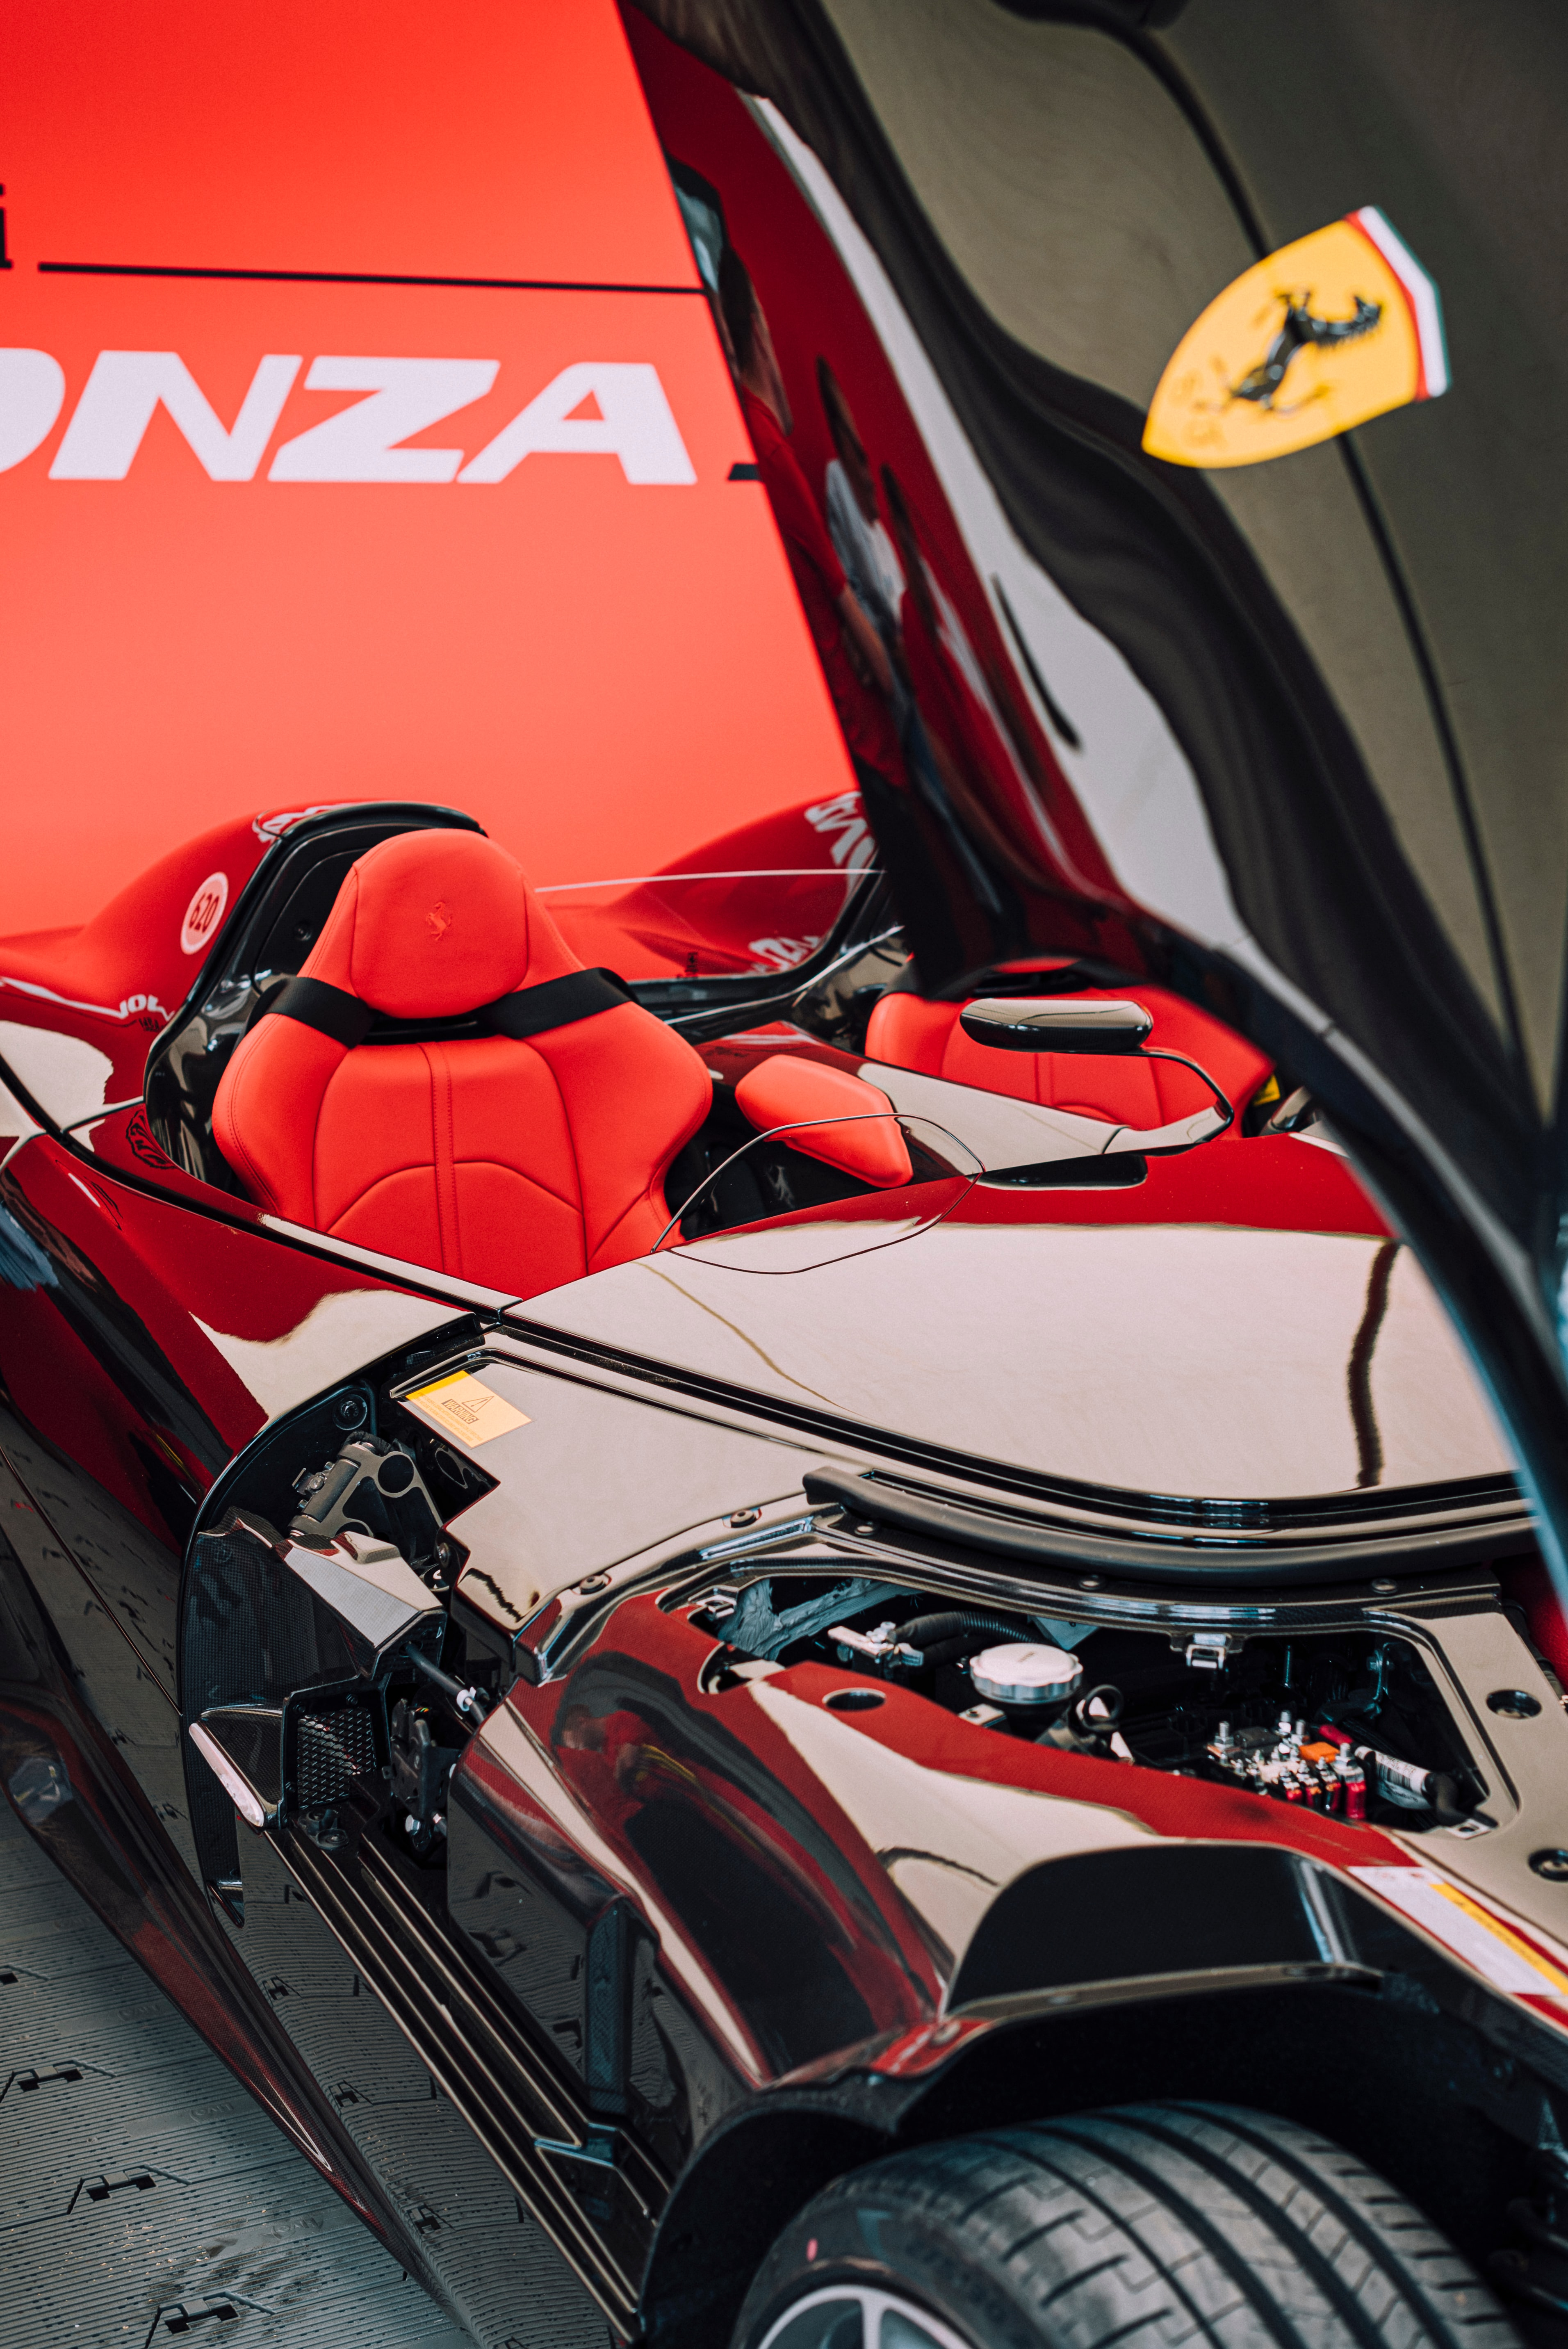 106254 Screensavers and Wallpapers Races for phone. Download Sports, Races, Ferrari, Cars, Car, Sports Car, Ferrari Monza Sp2 pictures for free